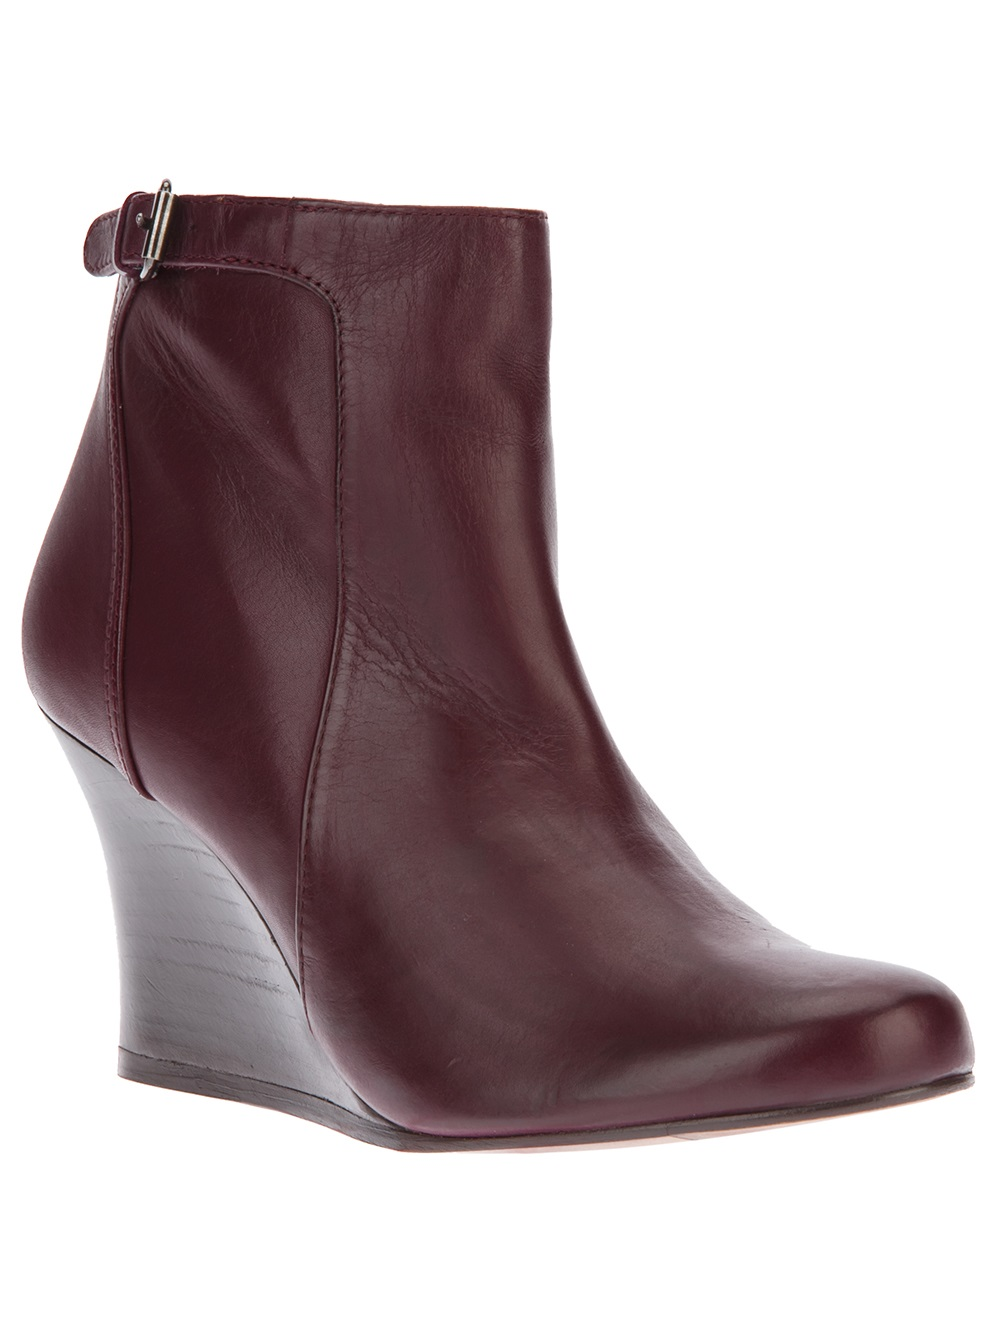 lanvin wedge booties in brown burgundy lyst